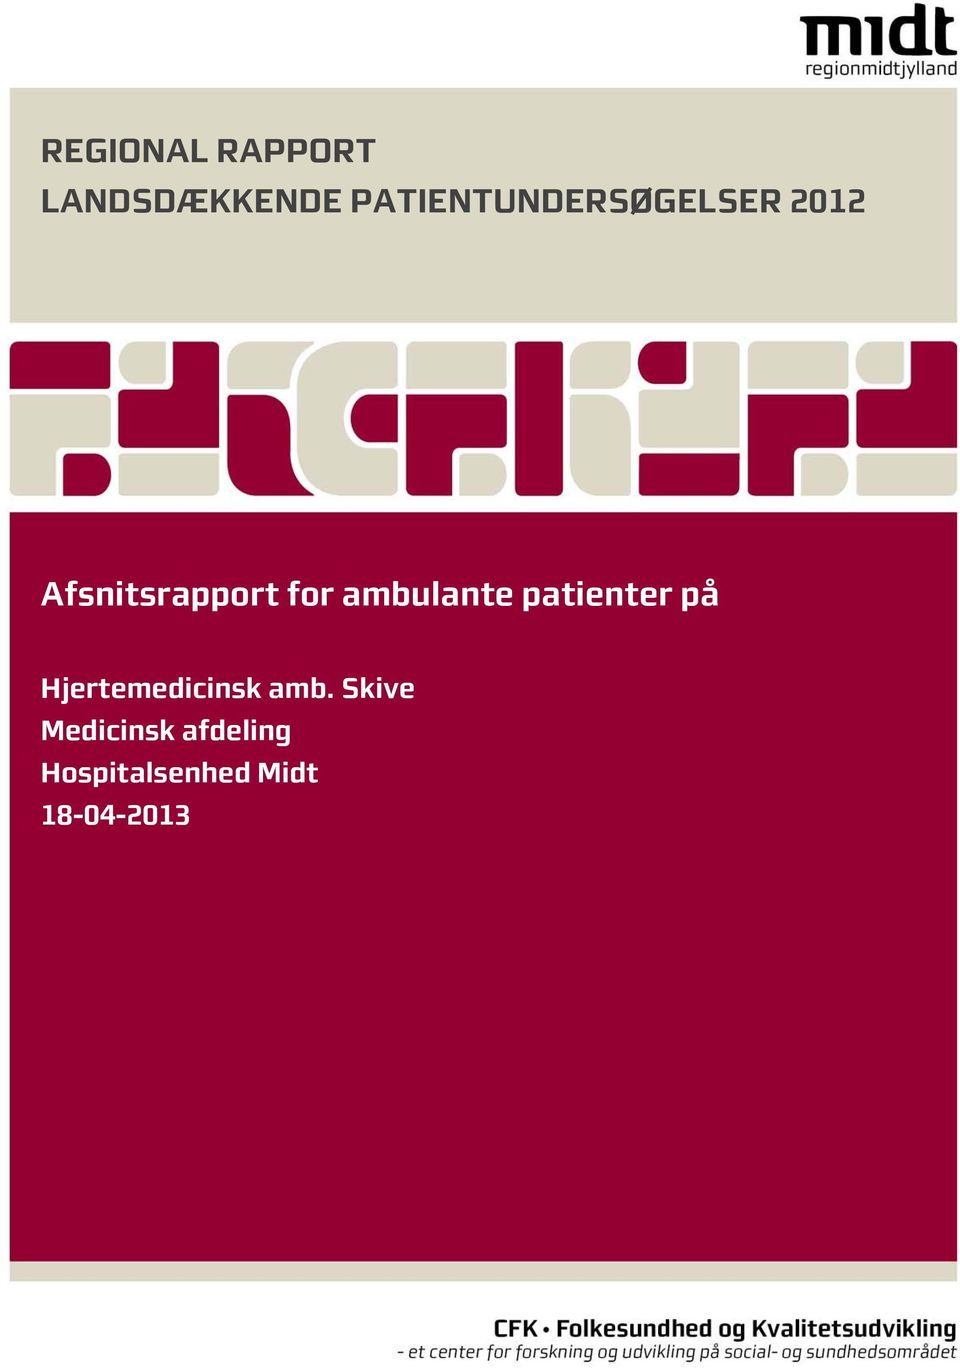 for ambulante patienter på Hjertemedicinsk